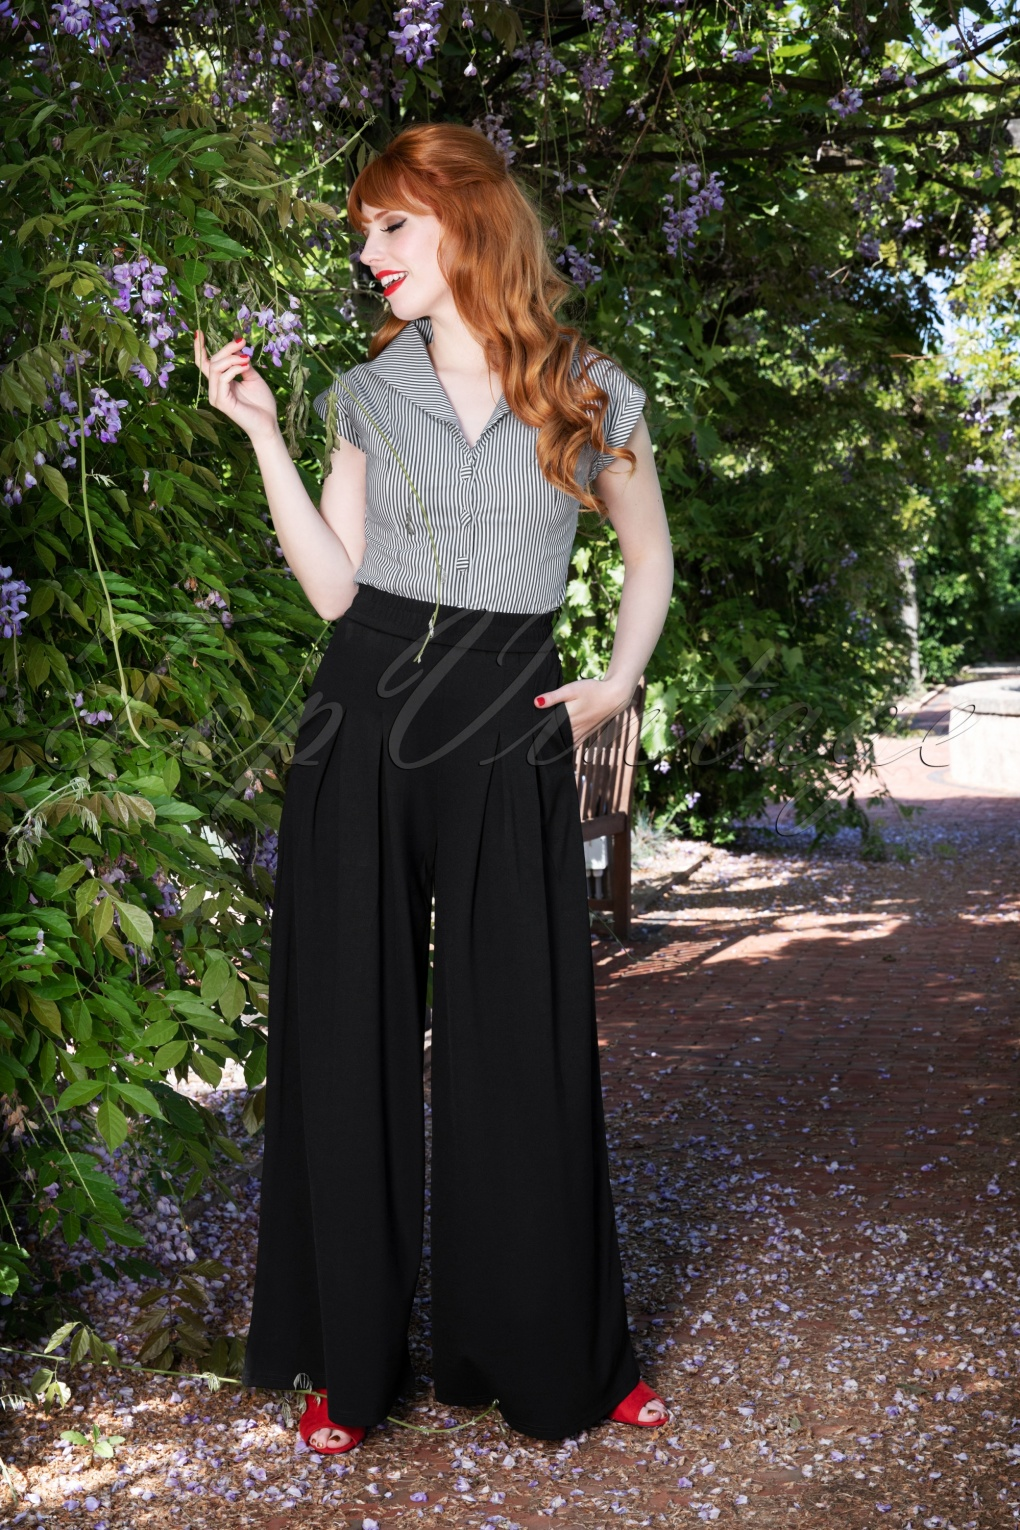 Vintage High Waisted Trousers, Sailor Pants, Jeans 70s Indiana Trousers in Black £49.57 AT vintagedancer.com